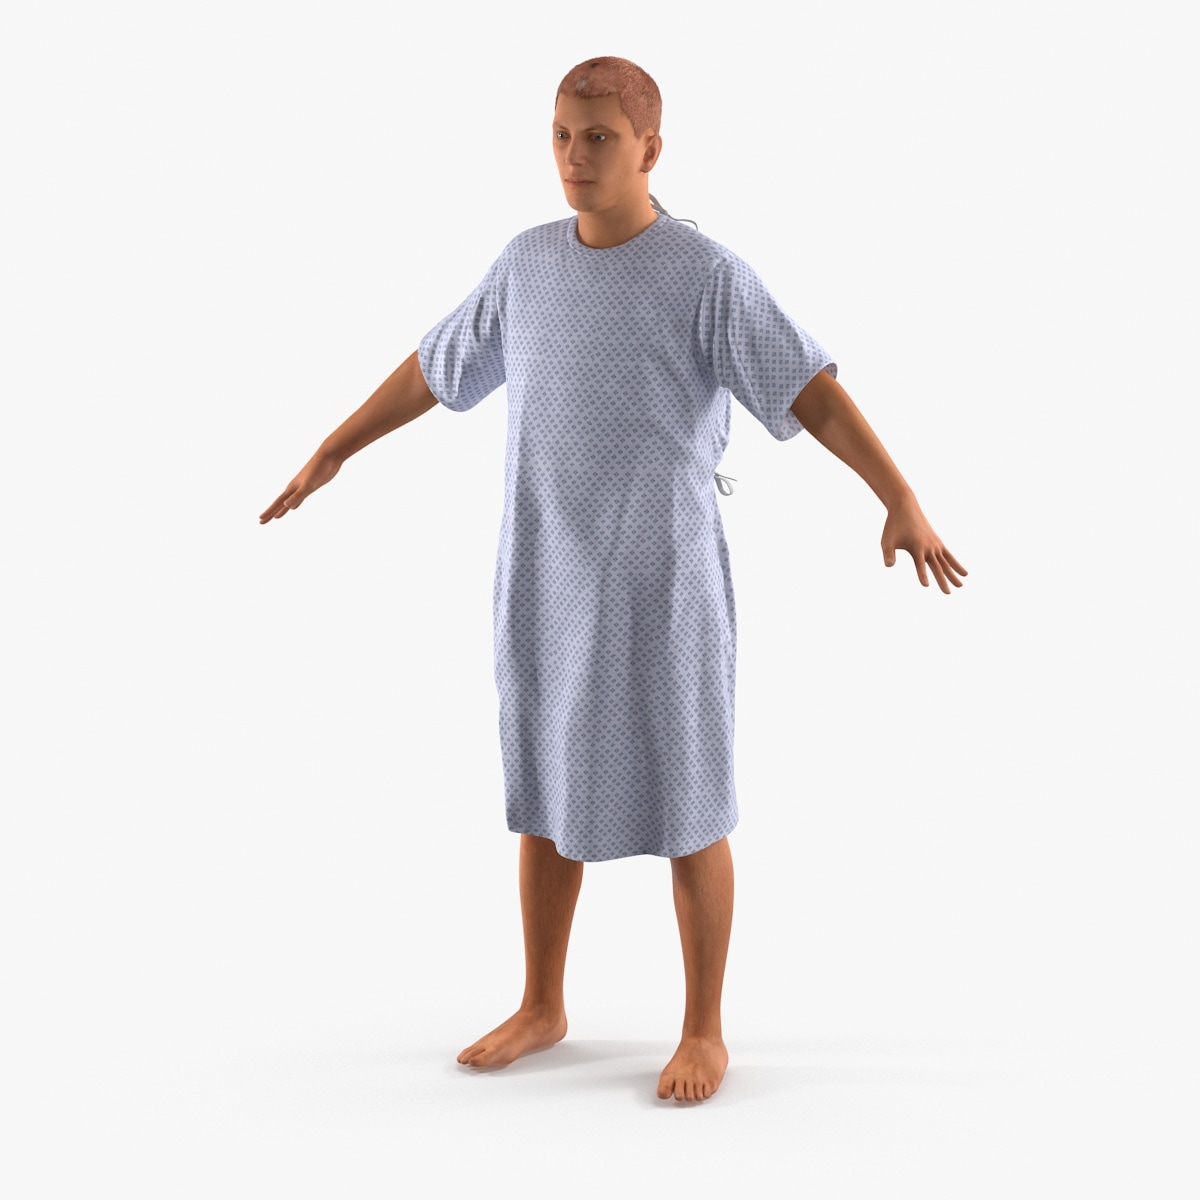 3d model rigged hospital patient